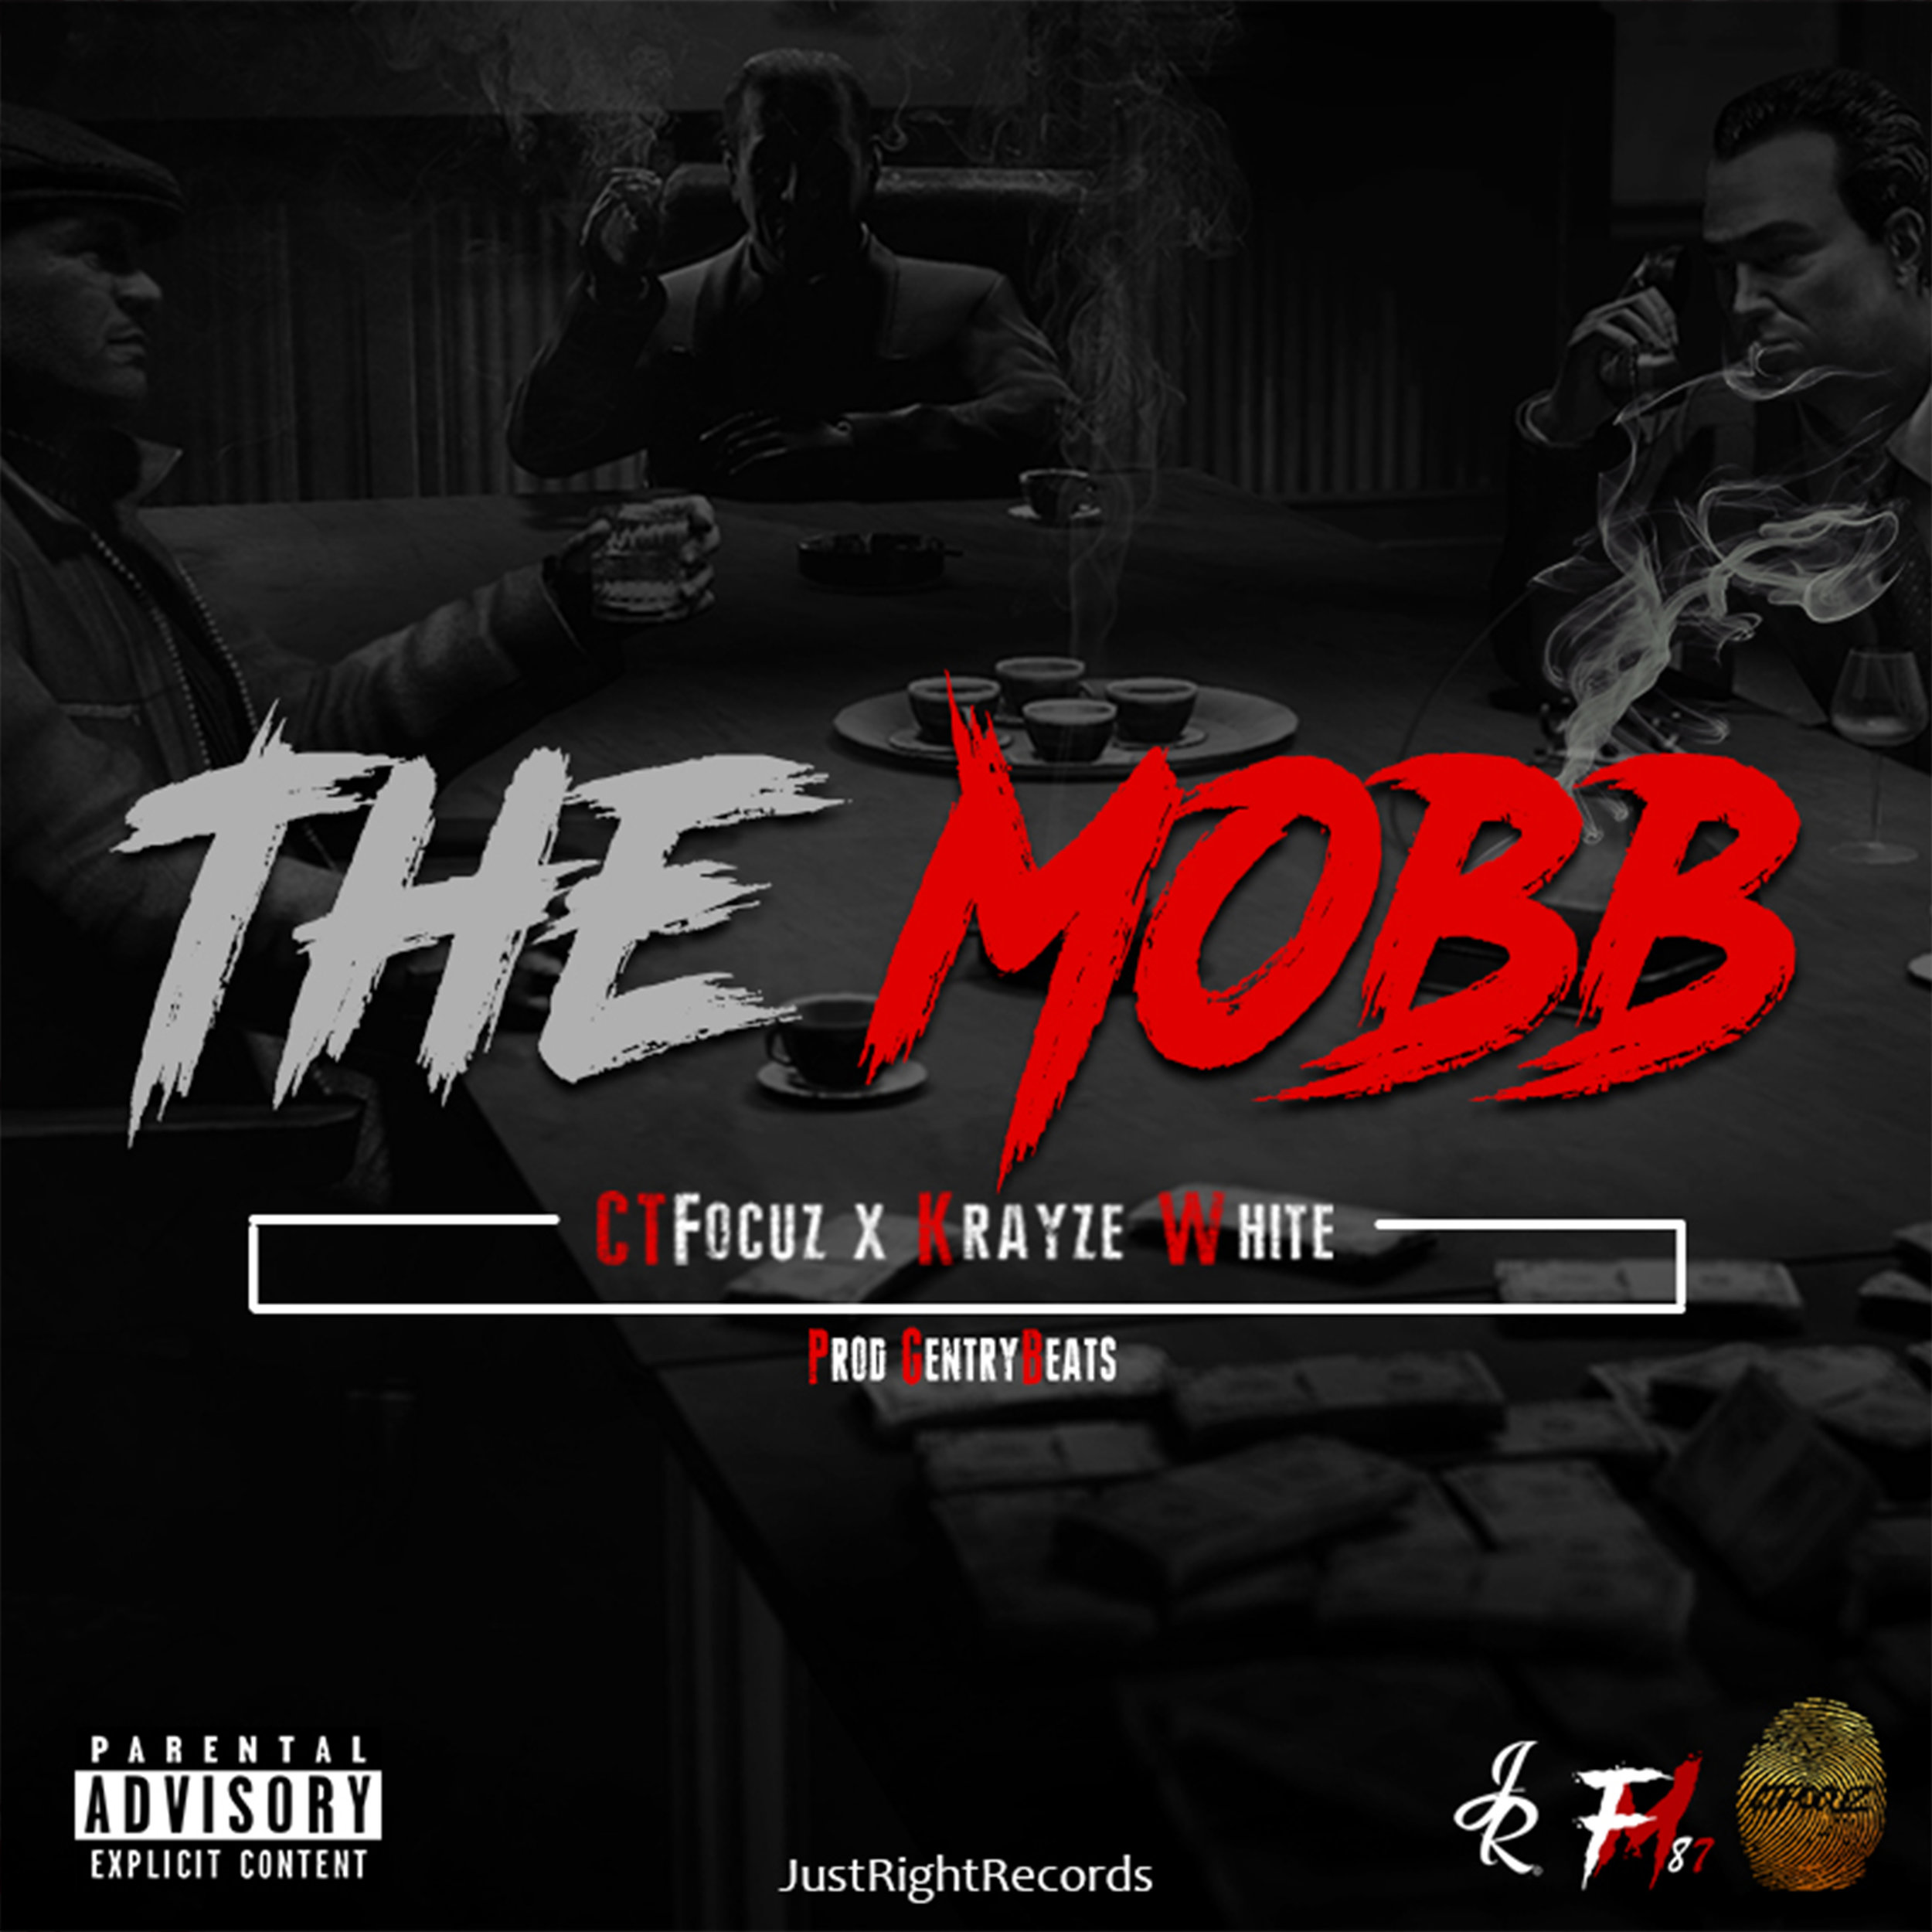 next Week droppin on oct 24th ctfocuz ft. krayze white- the mobb (available on all digital platforms)